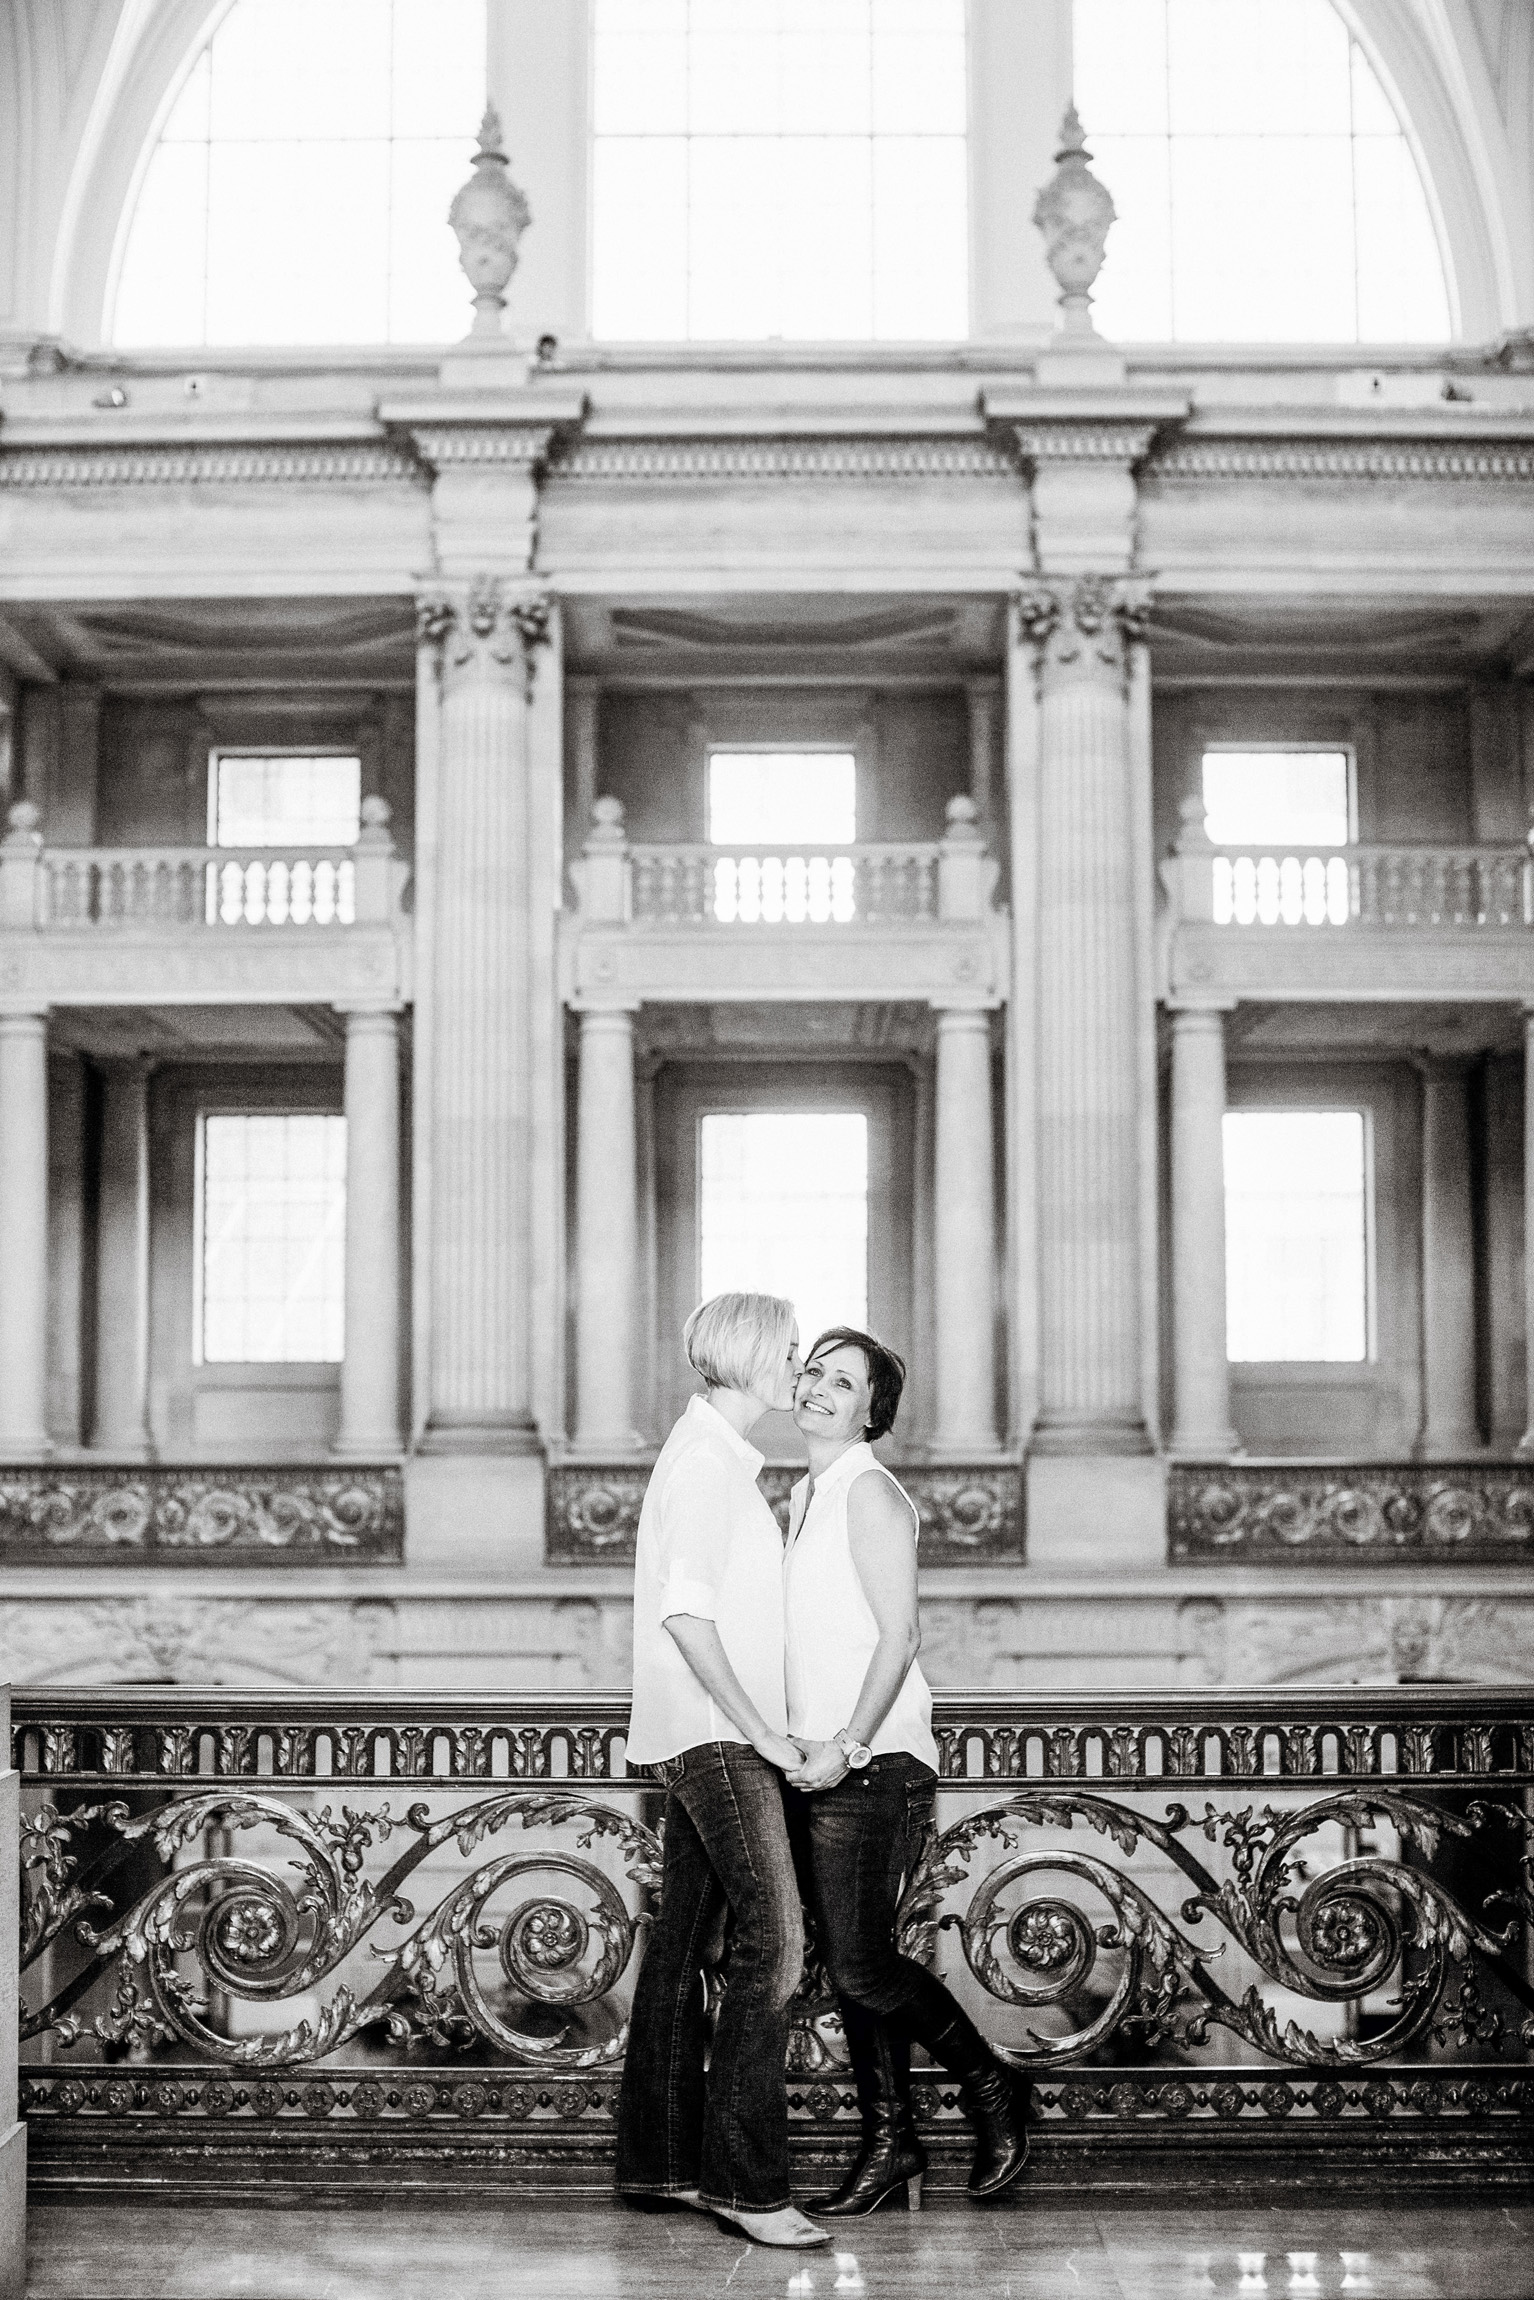 011_janaeshieldsphotography_sanfrancisco_cityhall_weddings.jpg